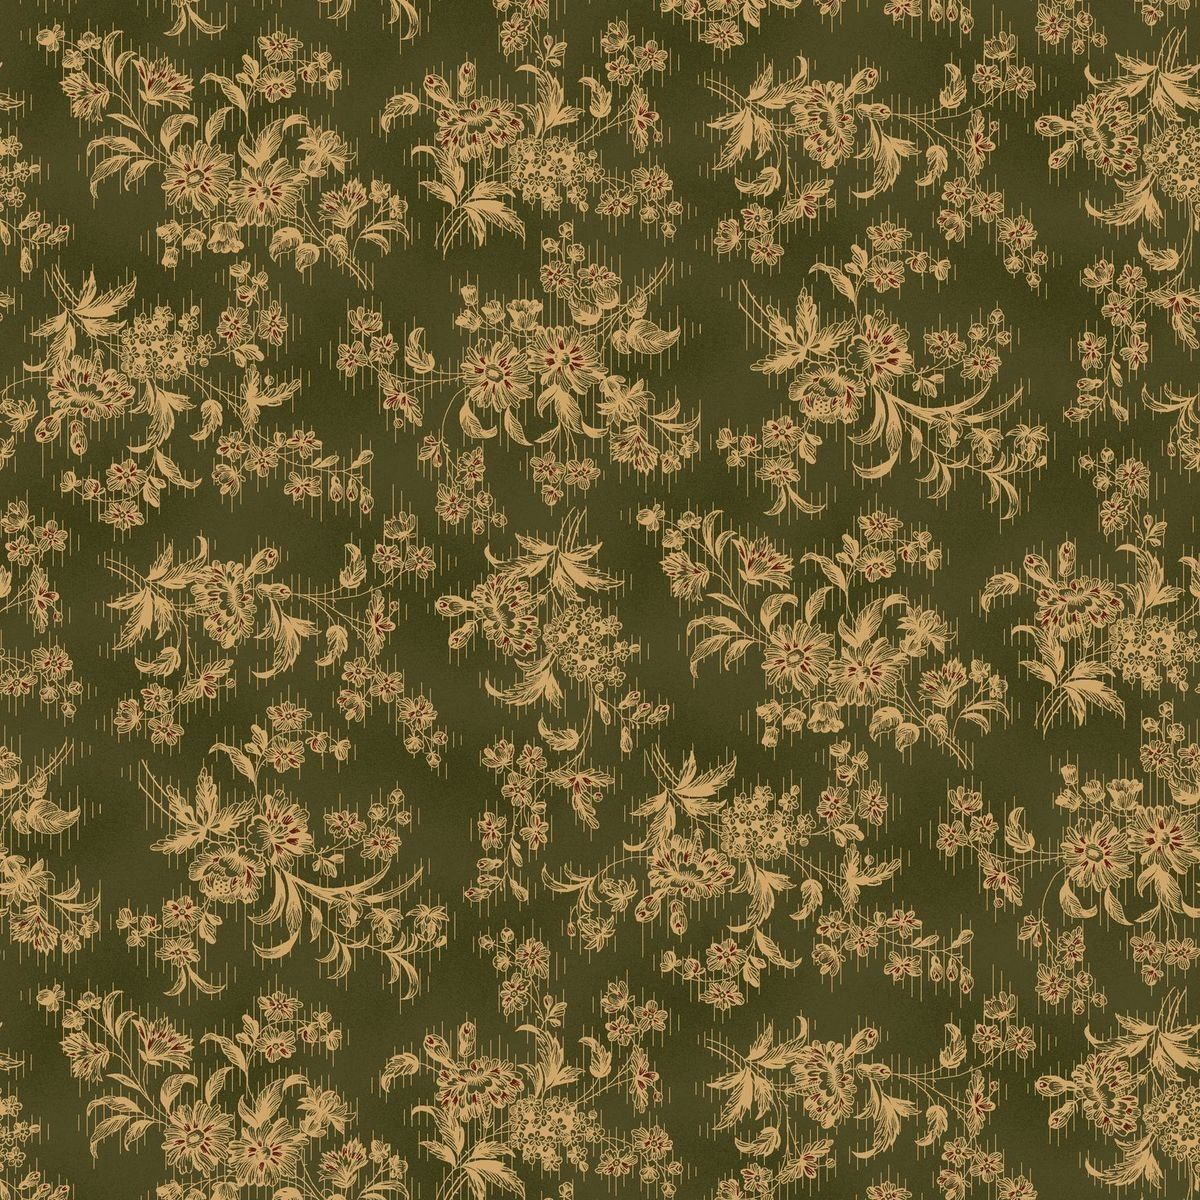 HG-Farmhouse Christmas 9676-66 Green - Stylized Floral